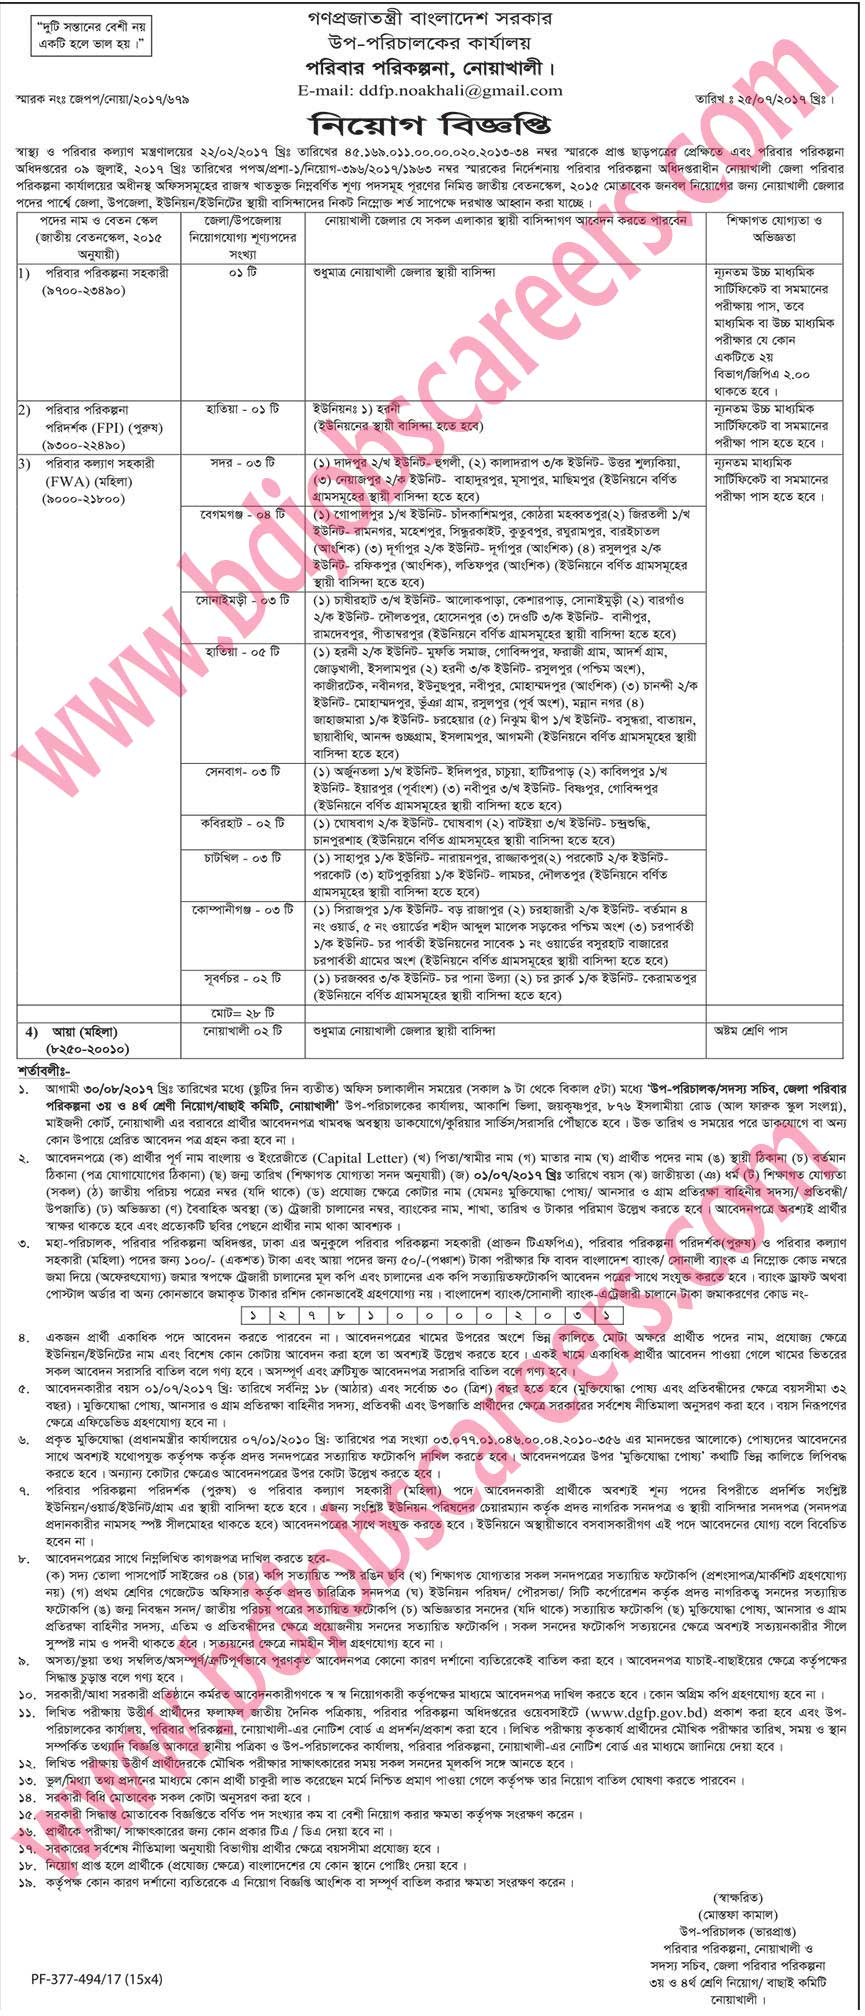 Noakhali District Family Planning Deputy Director's Office Job Circular 2017